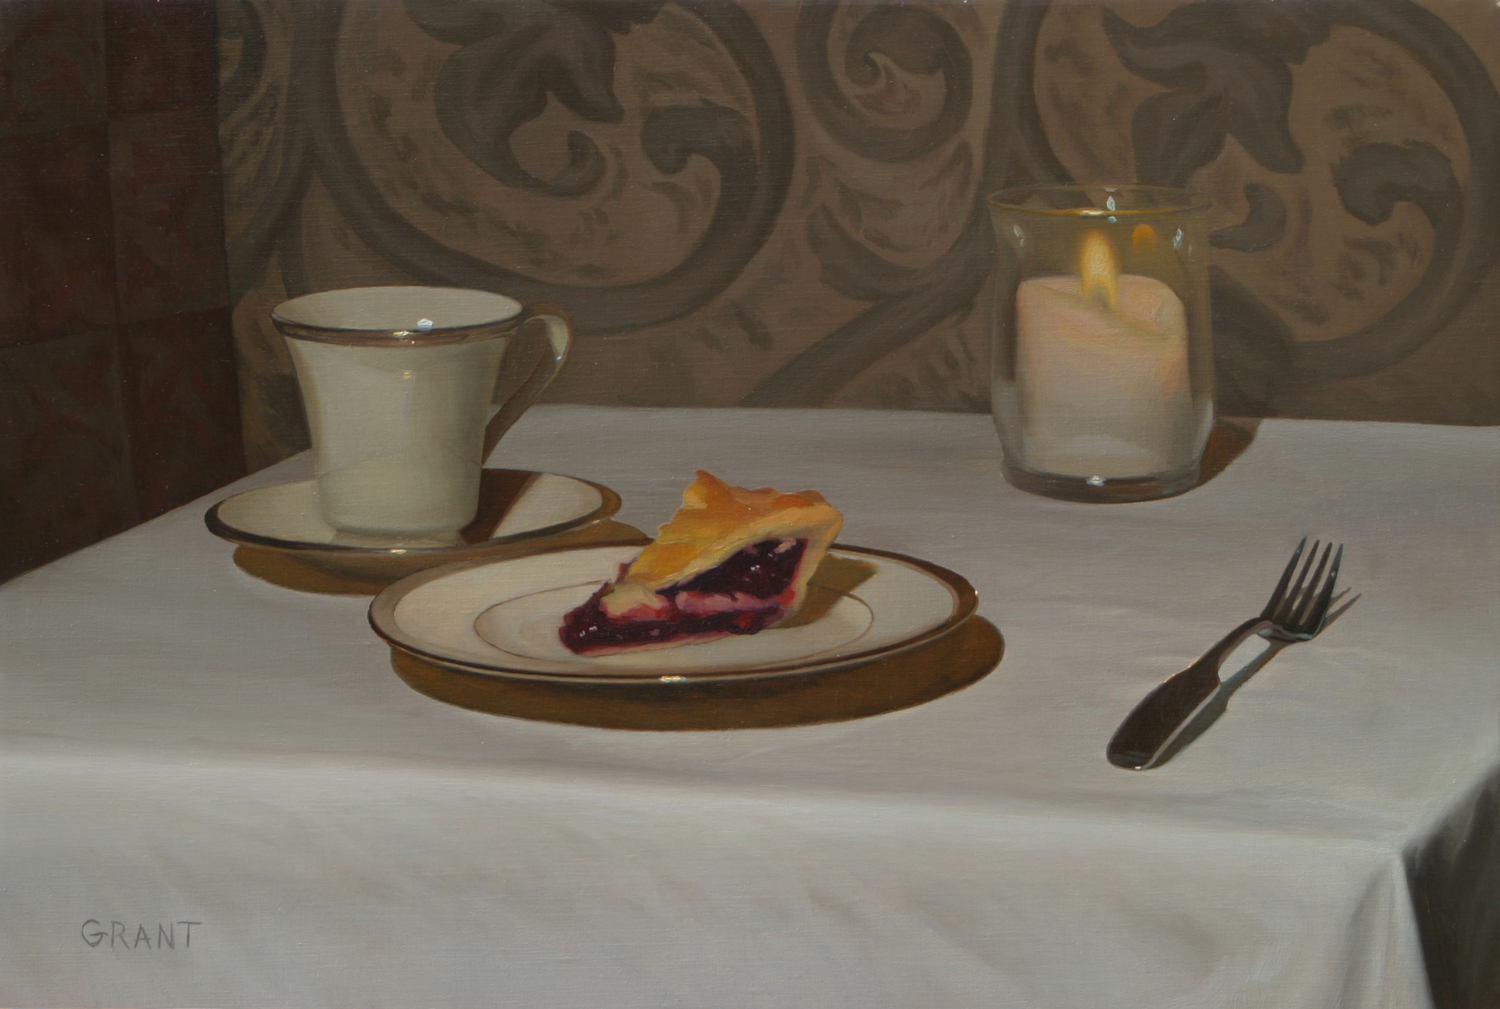 STILL LIFE PAINTING - 5 Days: 1-4 pmInstructor: Danny GrantStill Life painting will teach value, line, color, reflection, composition, textural mark making and more from direct observation.